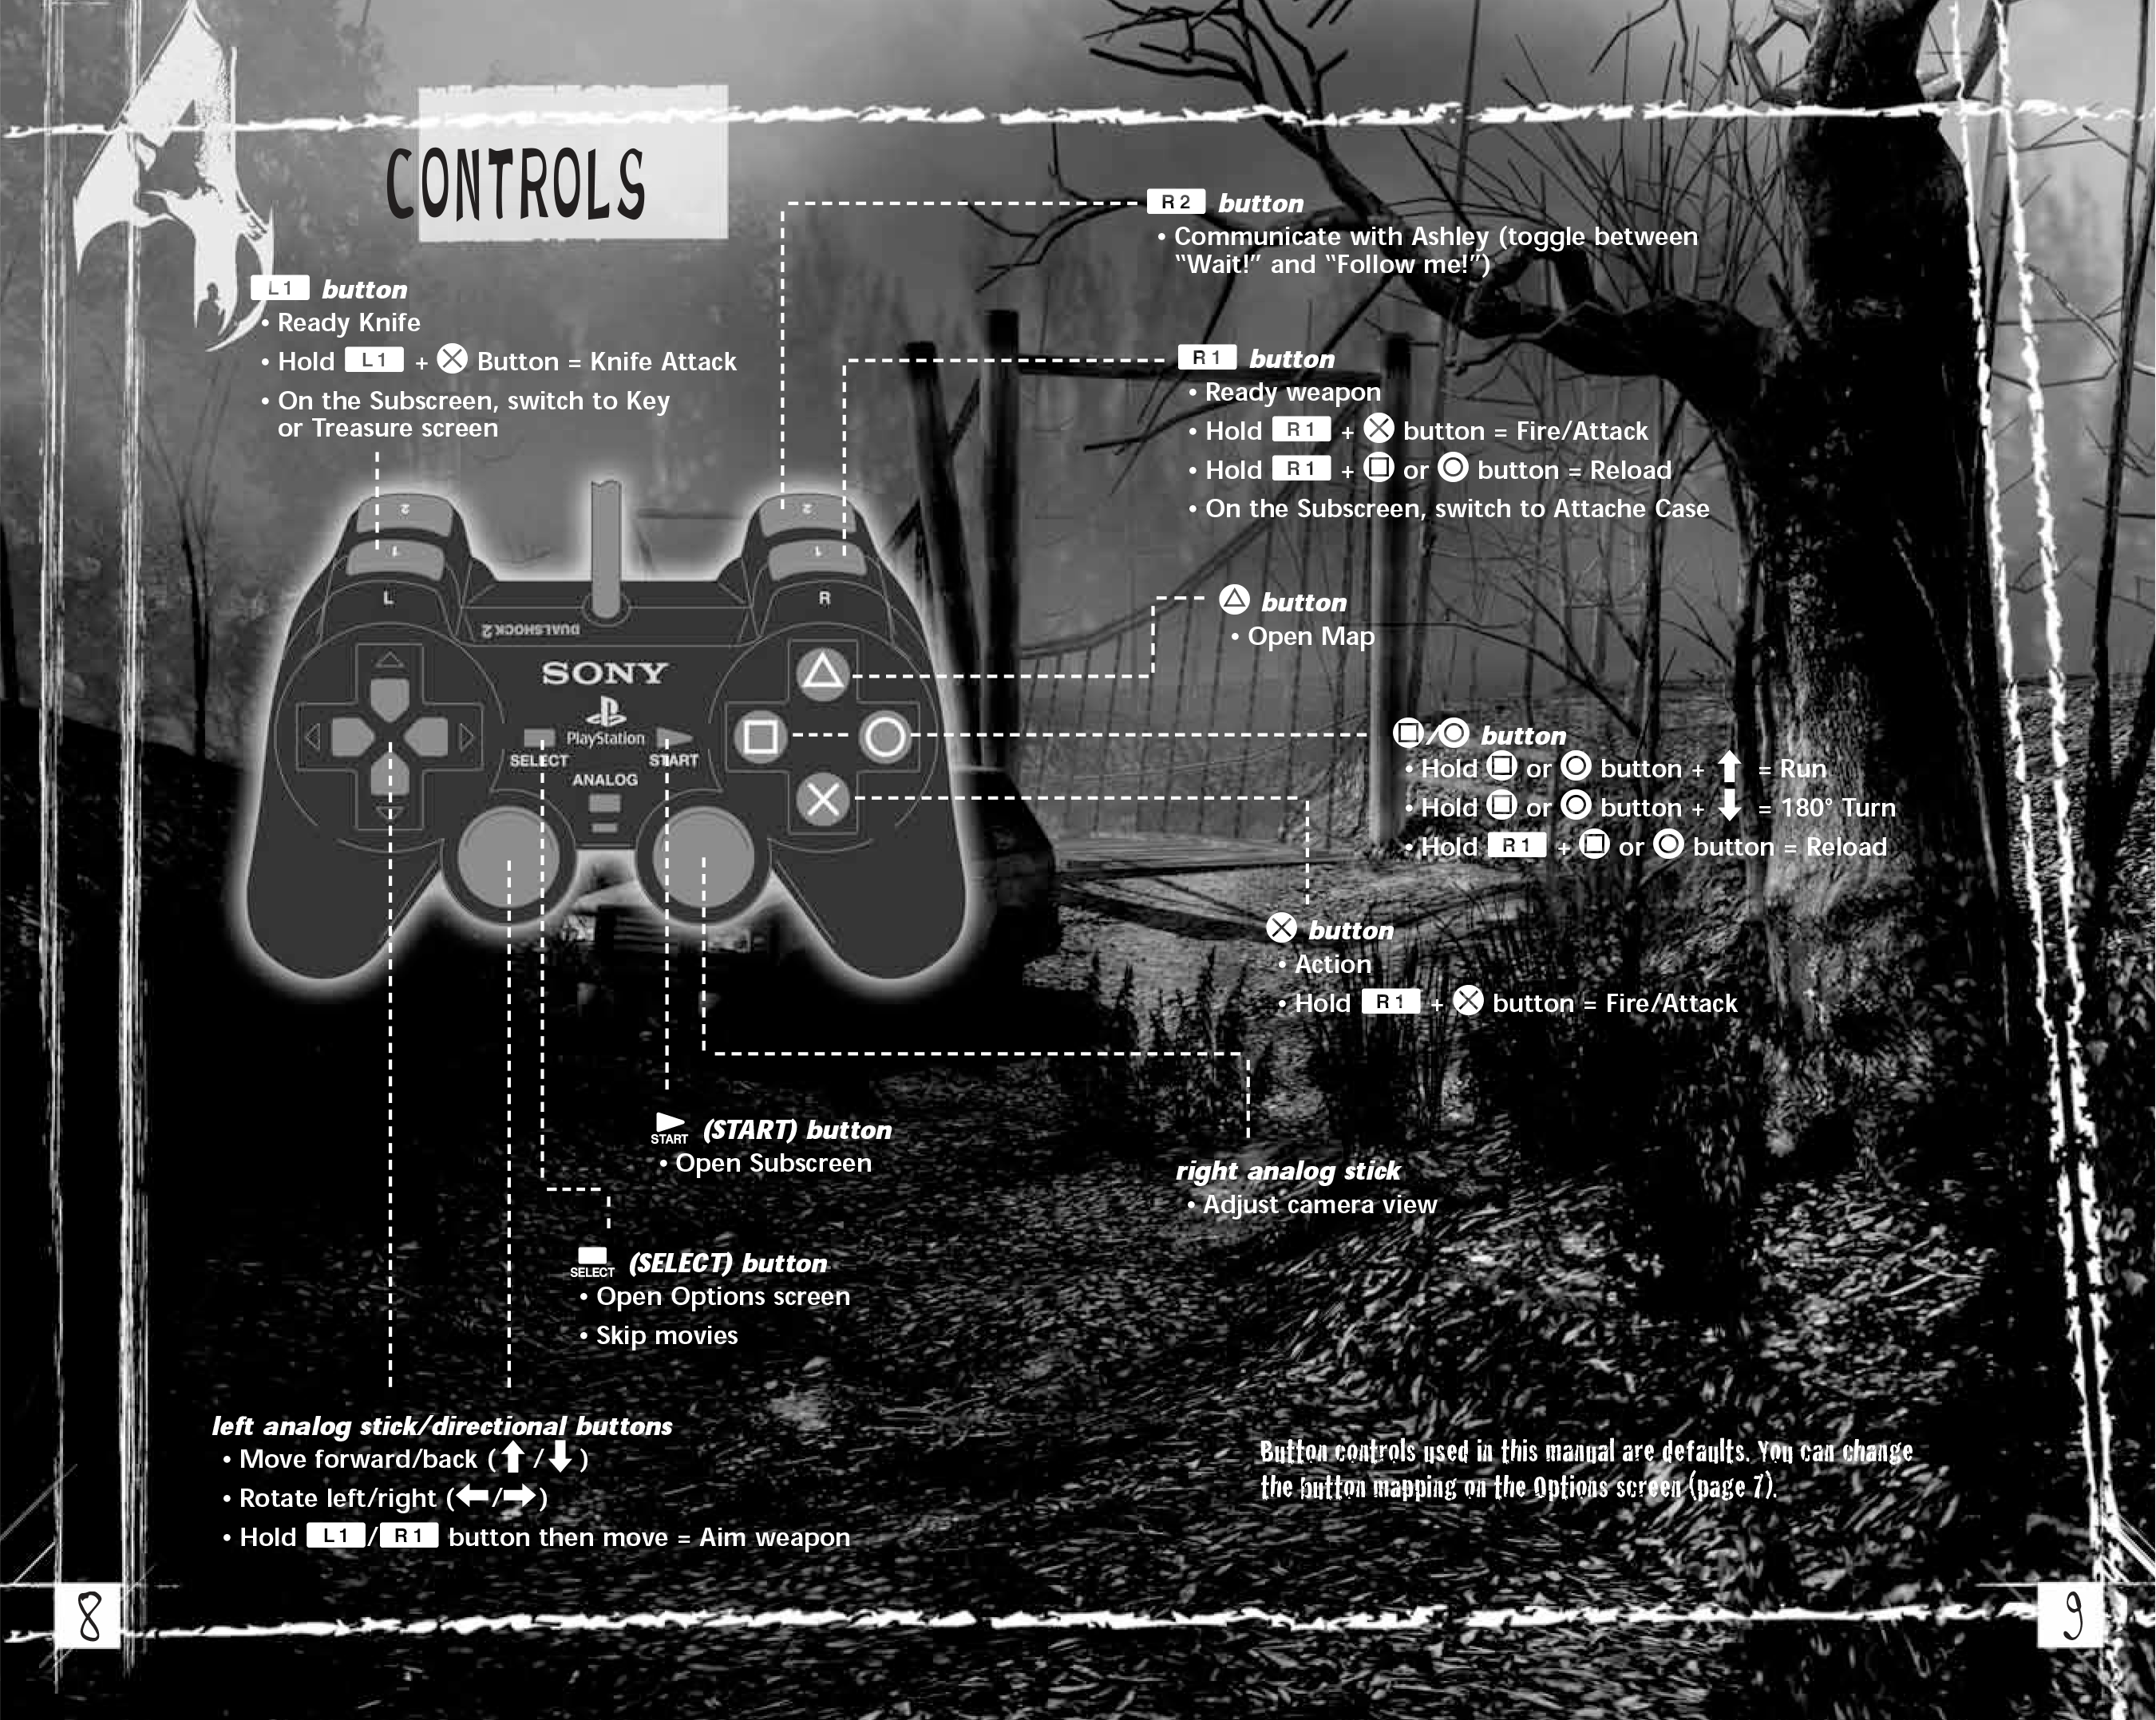 resident evil 4 ps4 controls